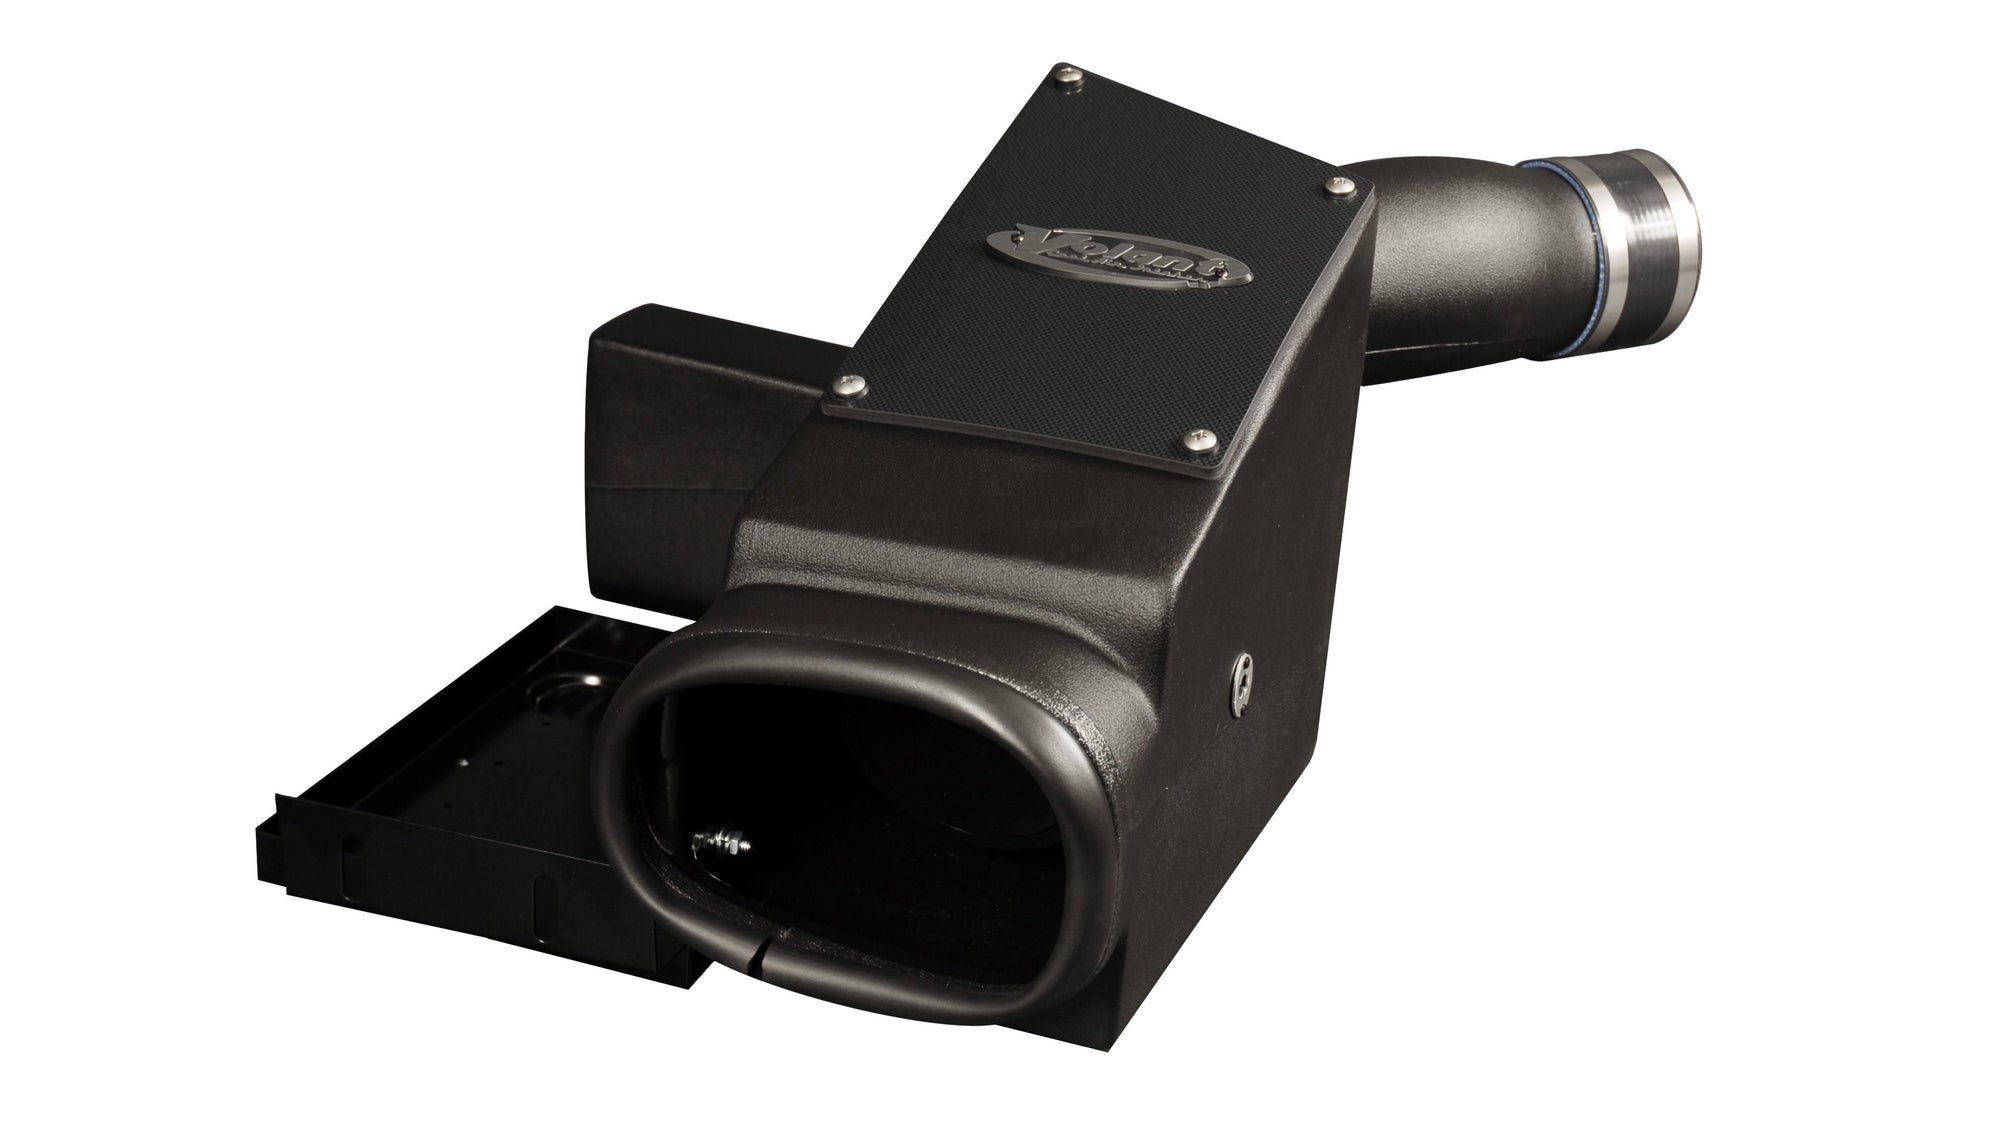 Closed Box Air Intake (19873) 1999-2003 Ford Excursion, F-250/F-350/F-450/F-550 Super Duty 7.3L V8